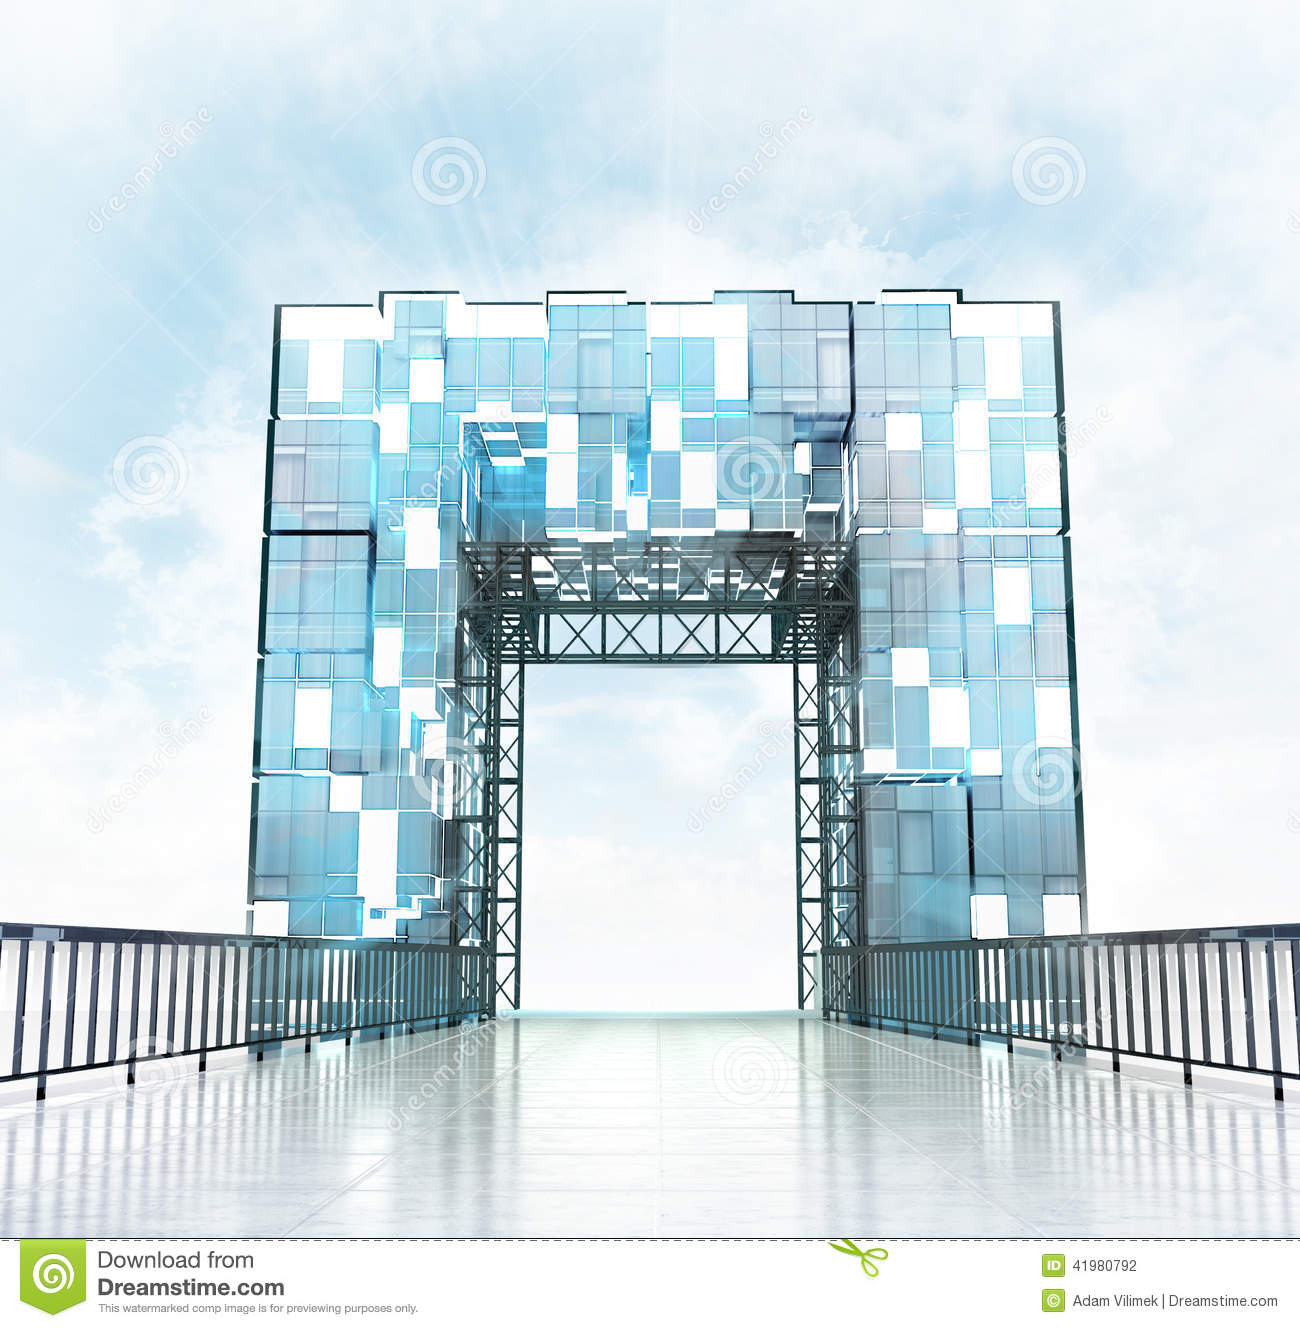 Main Modern House Gate Designs 60222270566 also Glass House By Nico Van Der Meulen Architects additionally Stock Illustration Grand Entrance Modern Gateway Architecture Illustration Image41980792 further 60 Gorgeous Fence Ideas And Designs together with Grand Hyatt Bali. on modern house gate design